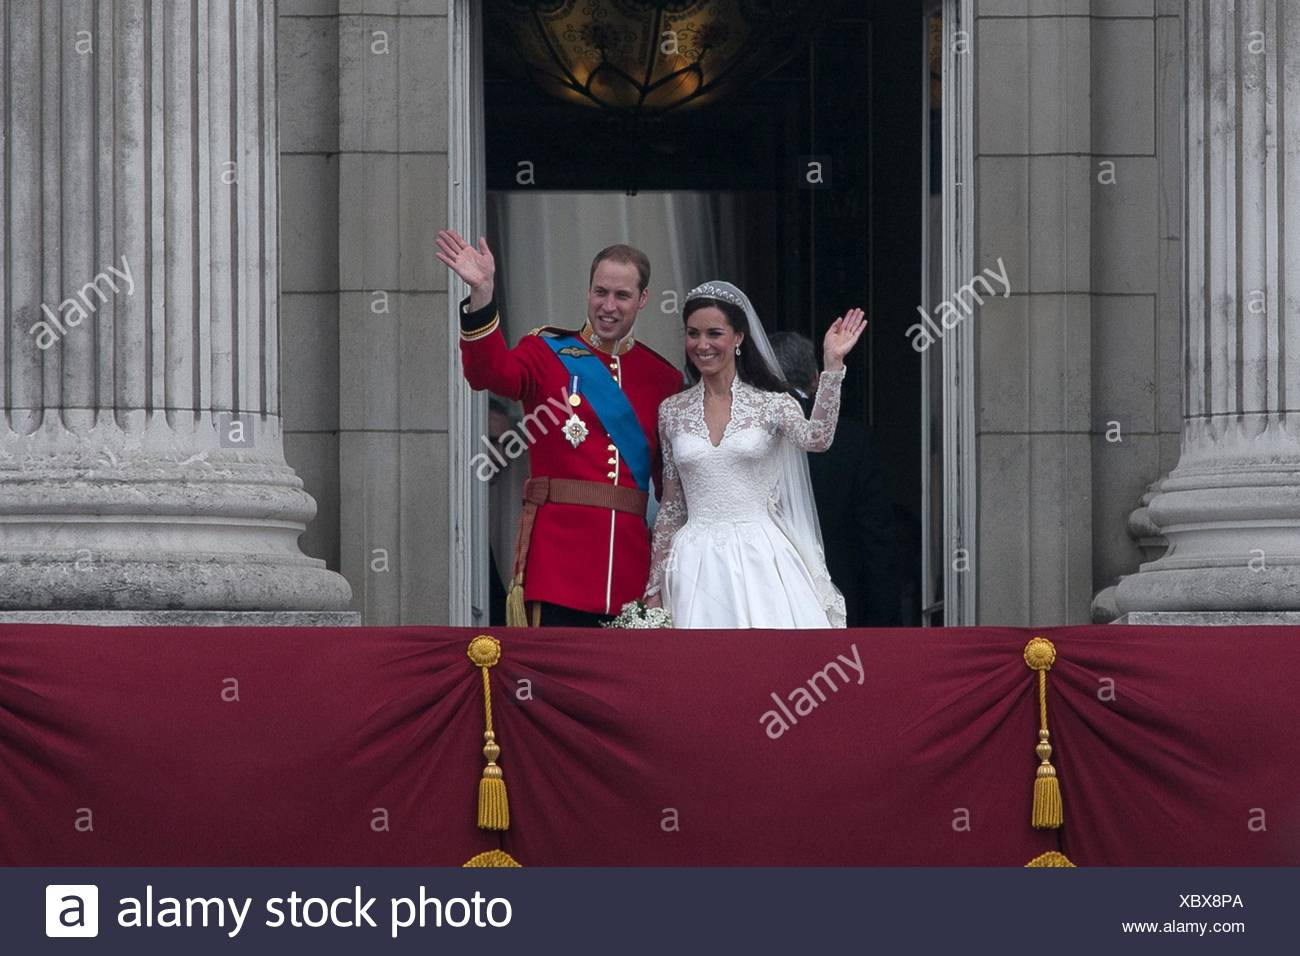 an analysis of the royal wedding of prince william of england and kate middleton Congratulations, kate middleton and prince william kensington palace has just announced the duchess of cambridge has given birth to a healthy baby boy in the private lindo wing of st mary's.